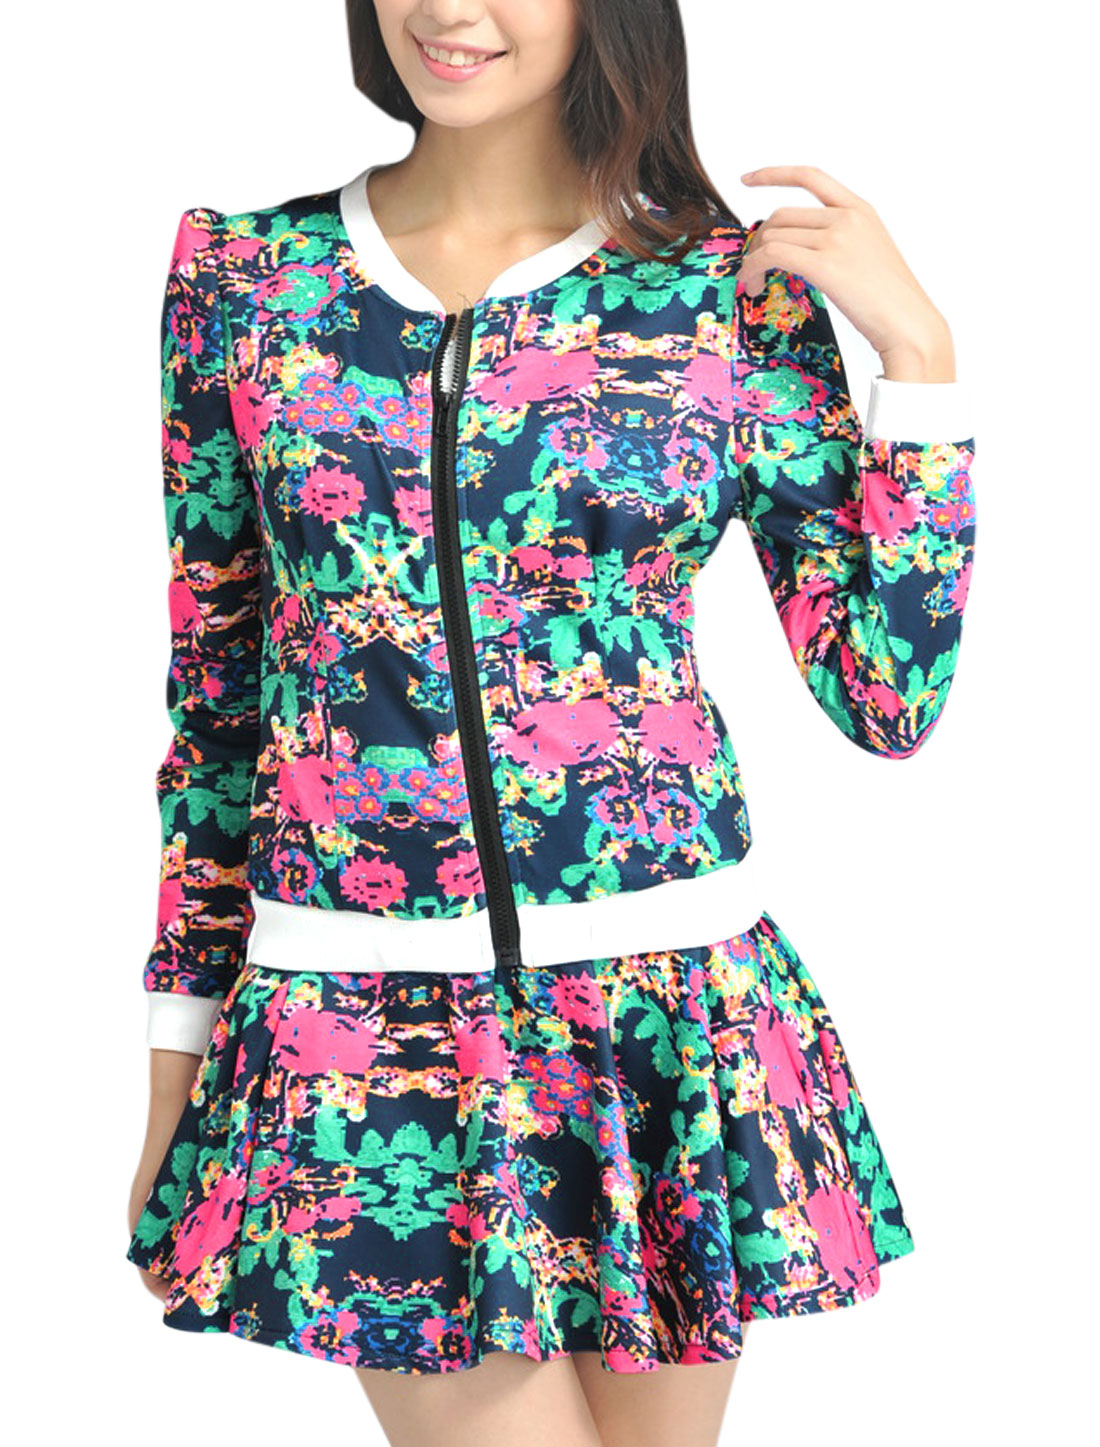 Ladies Multicolor Stand Collar Zippered Front Jacket w Elastic Waist Skirt XS